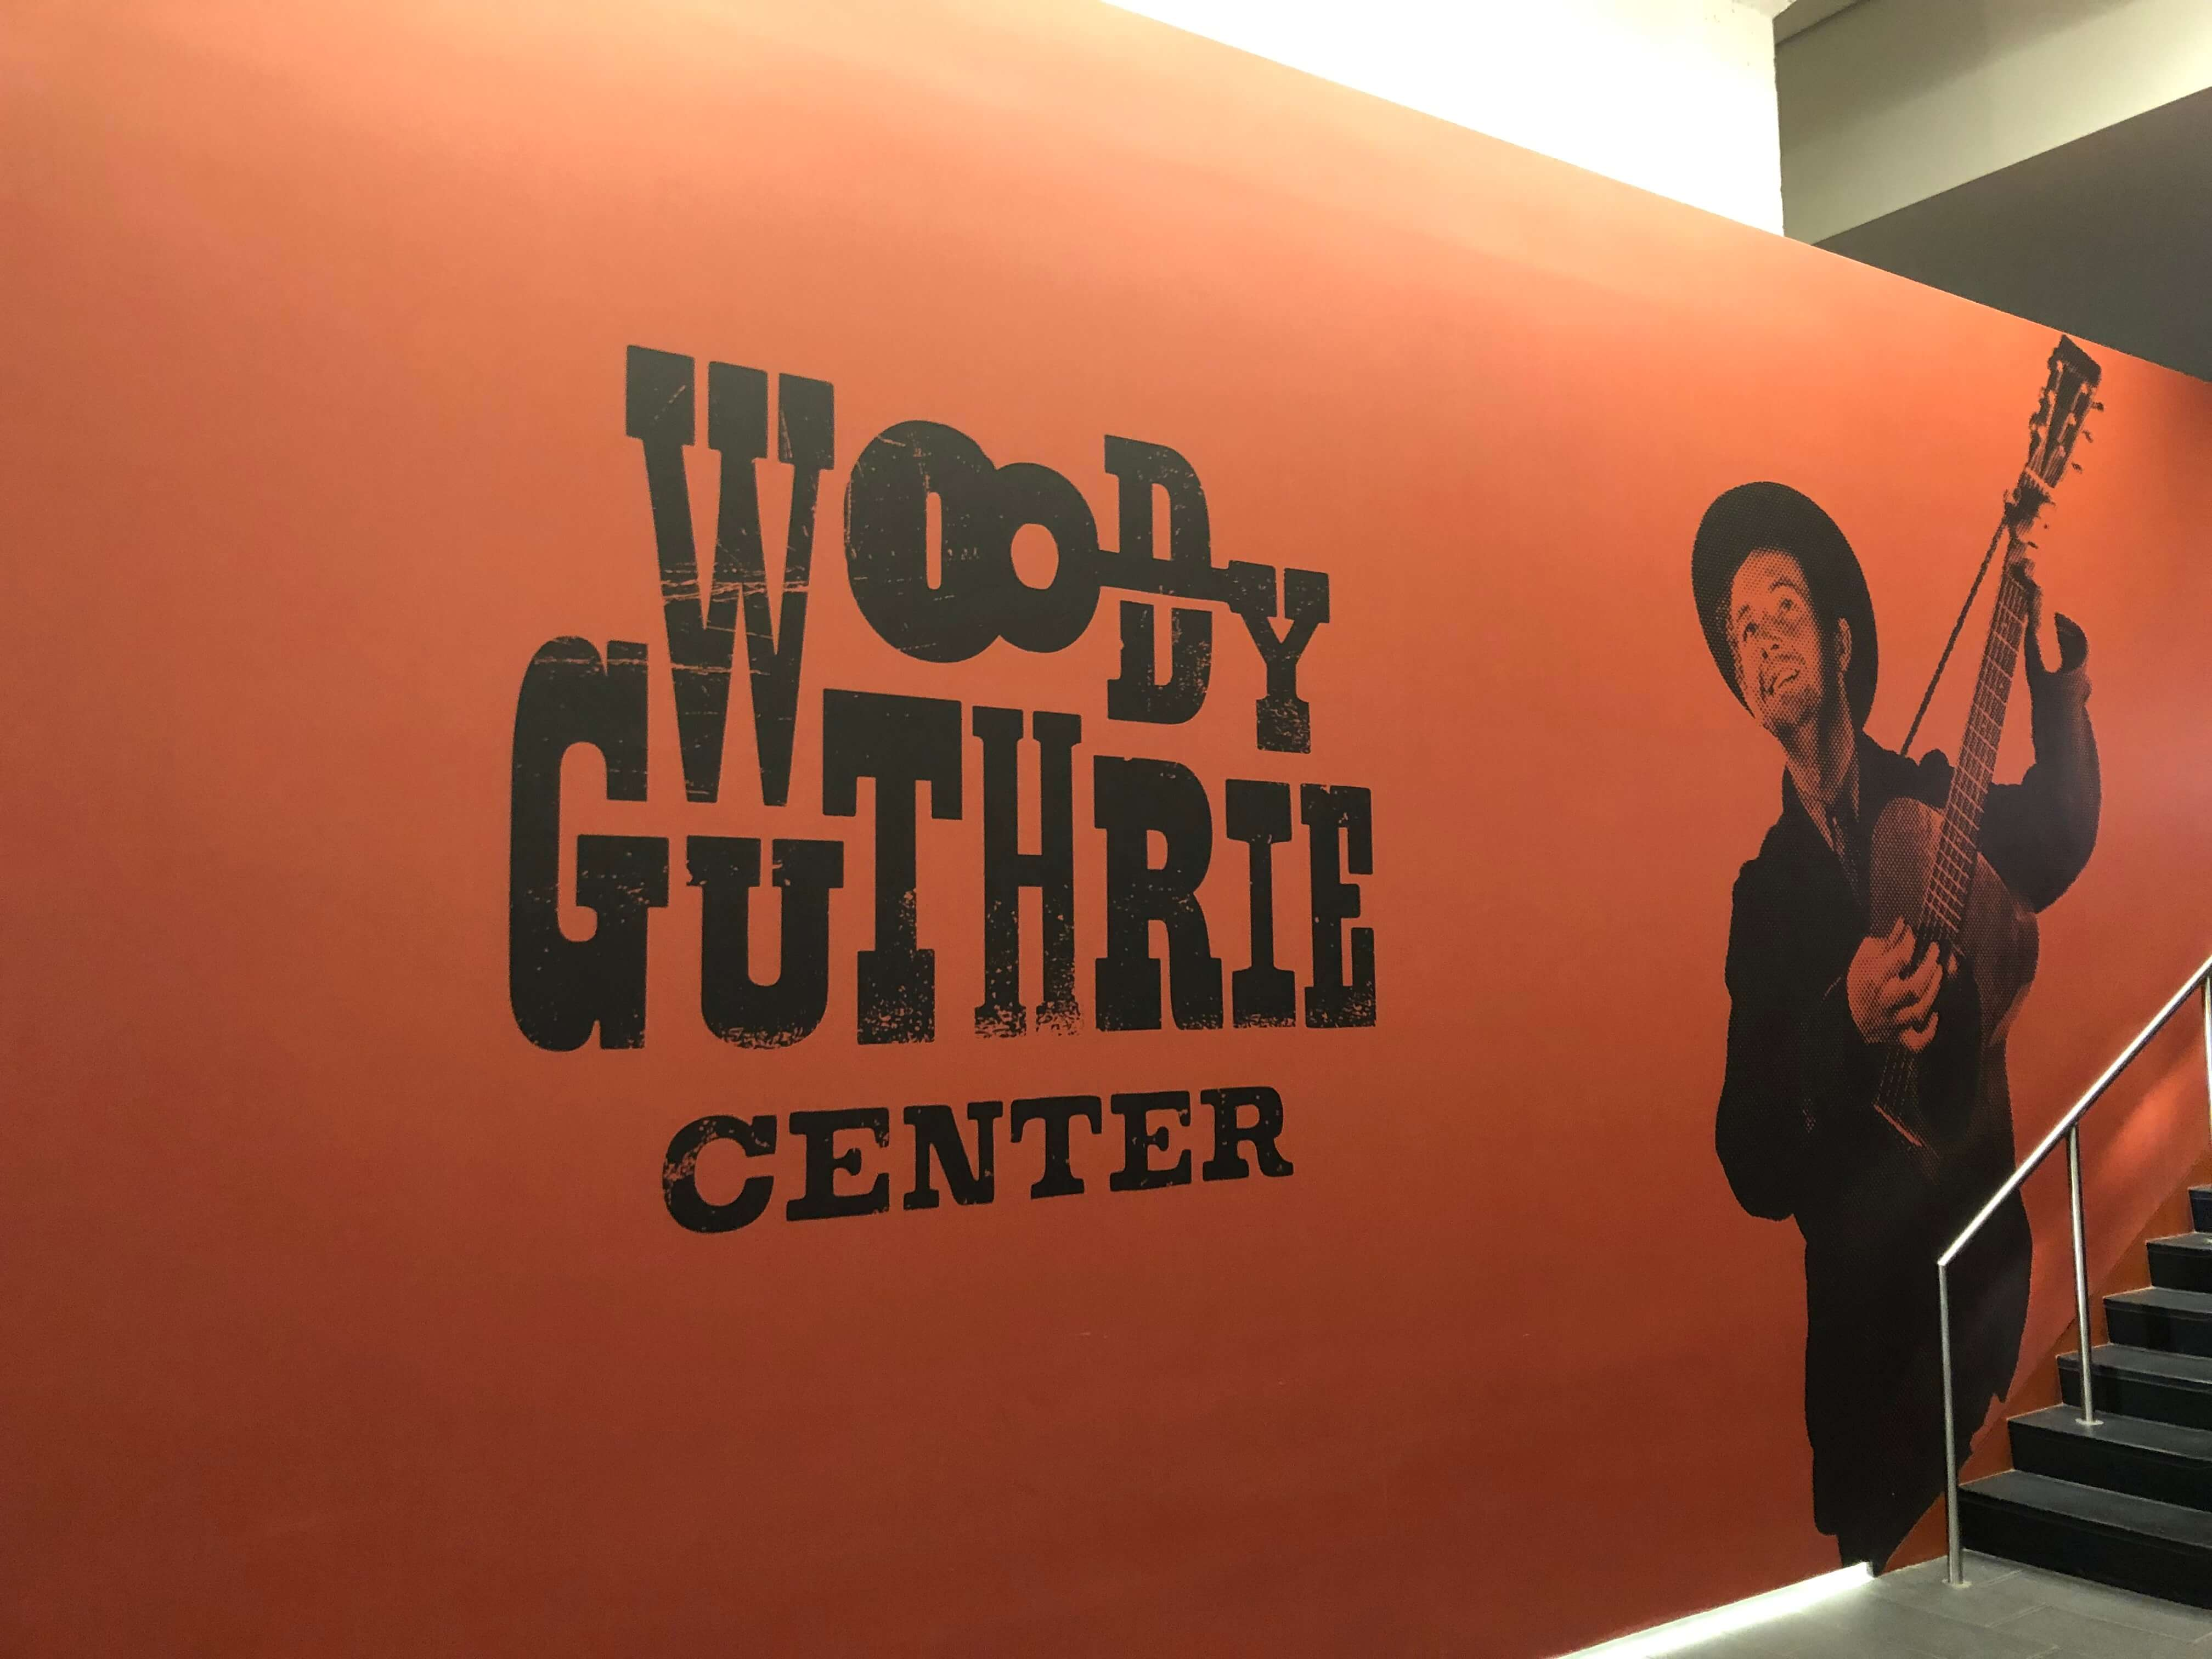 Woody Guthrie Center in Tulsa, Oklahoma